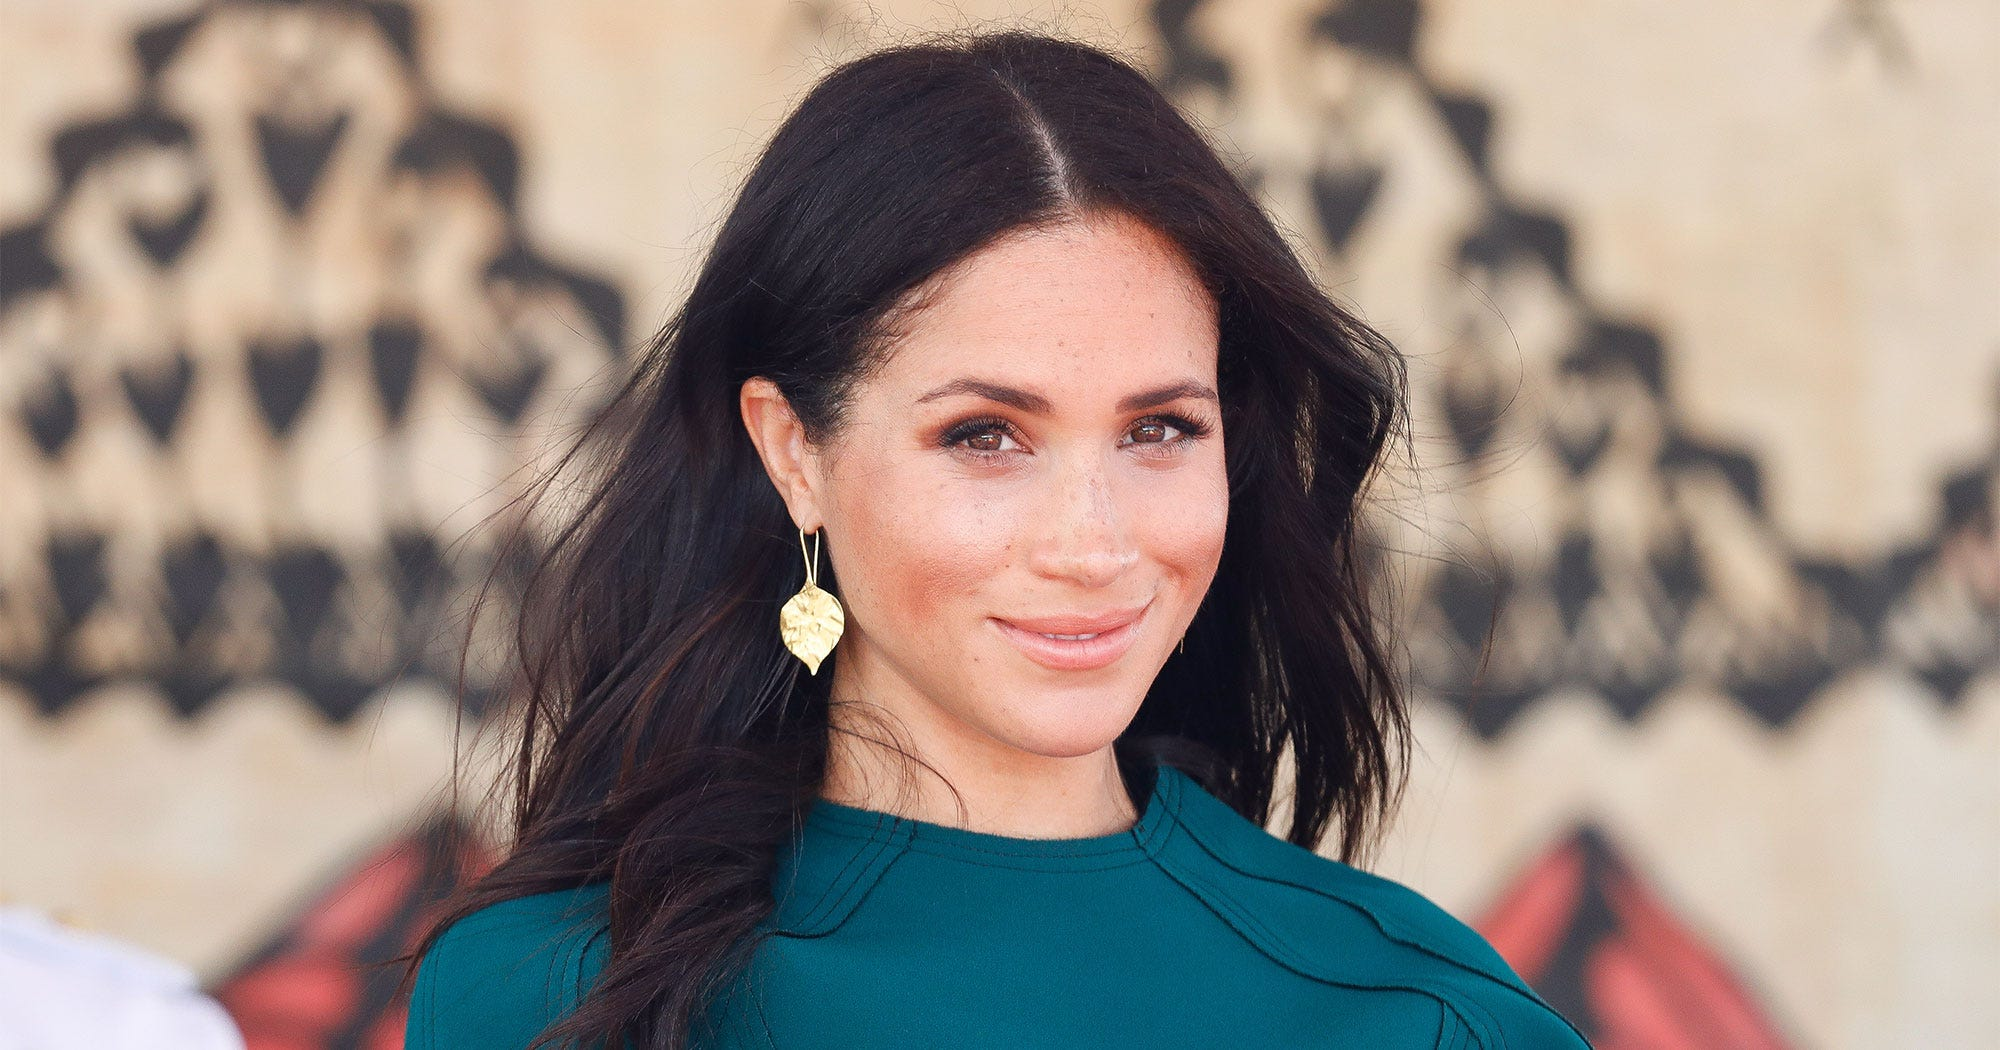 Meghan Markle Reportedly Jetted Off To Ibiza For Her Birthday, As Duchesses Do